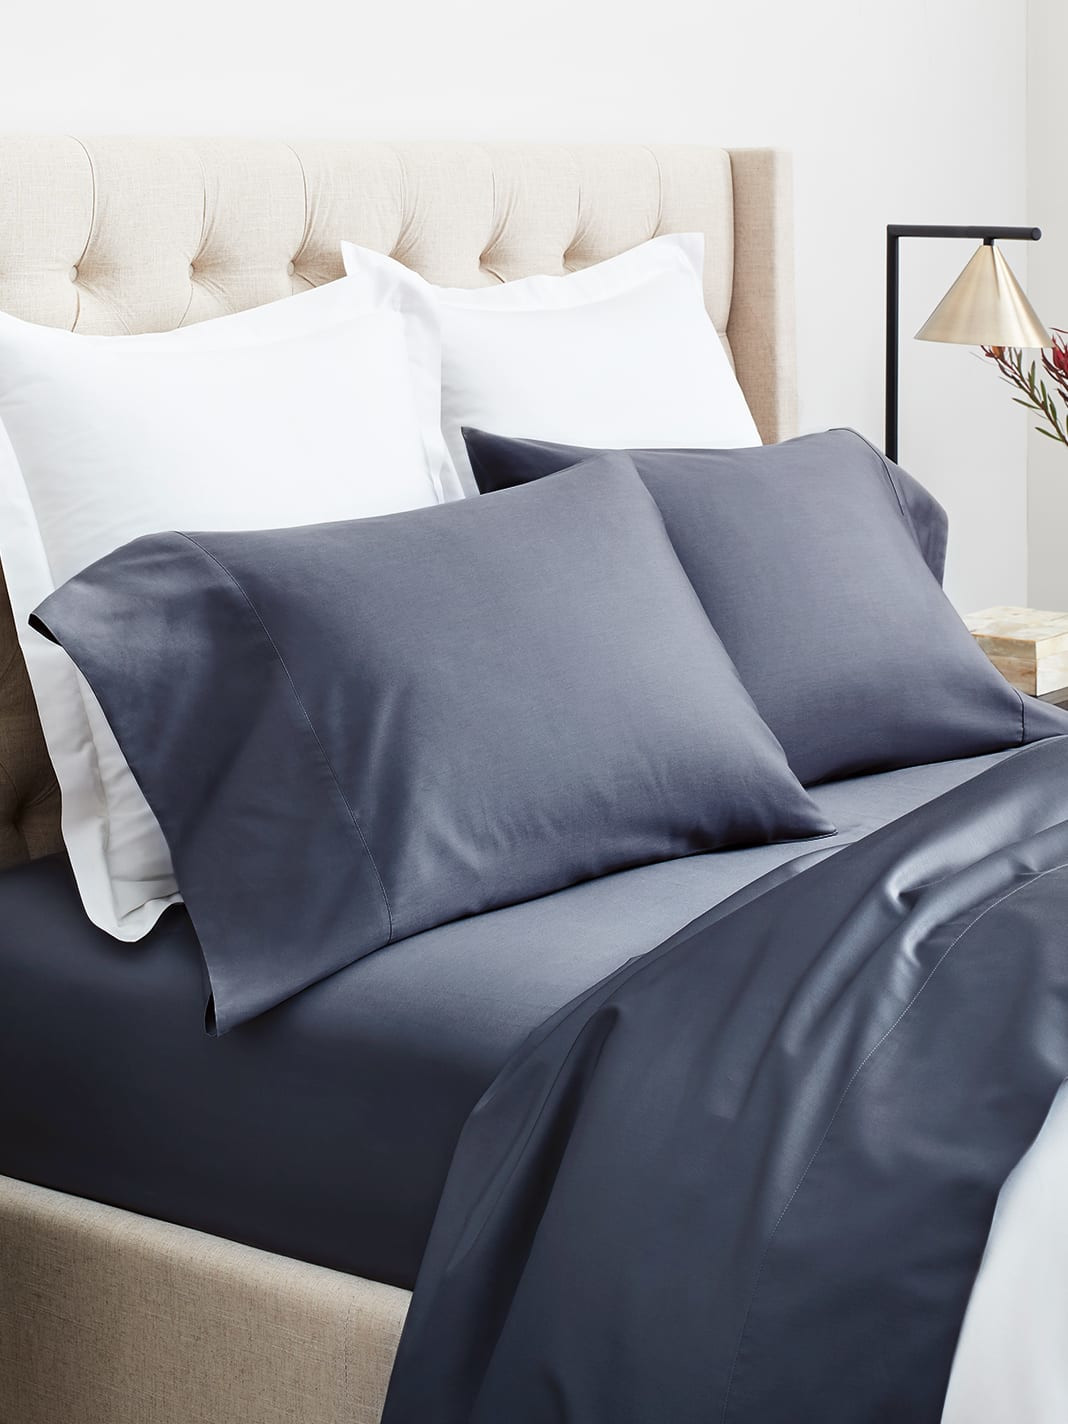 are the signature sheets from Boll & Branch comfortable?